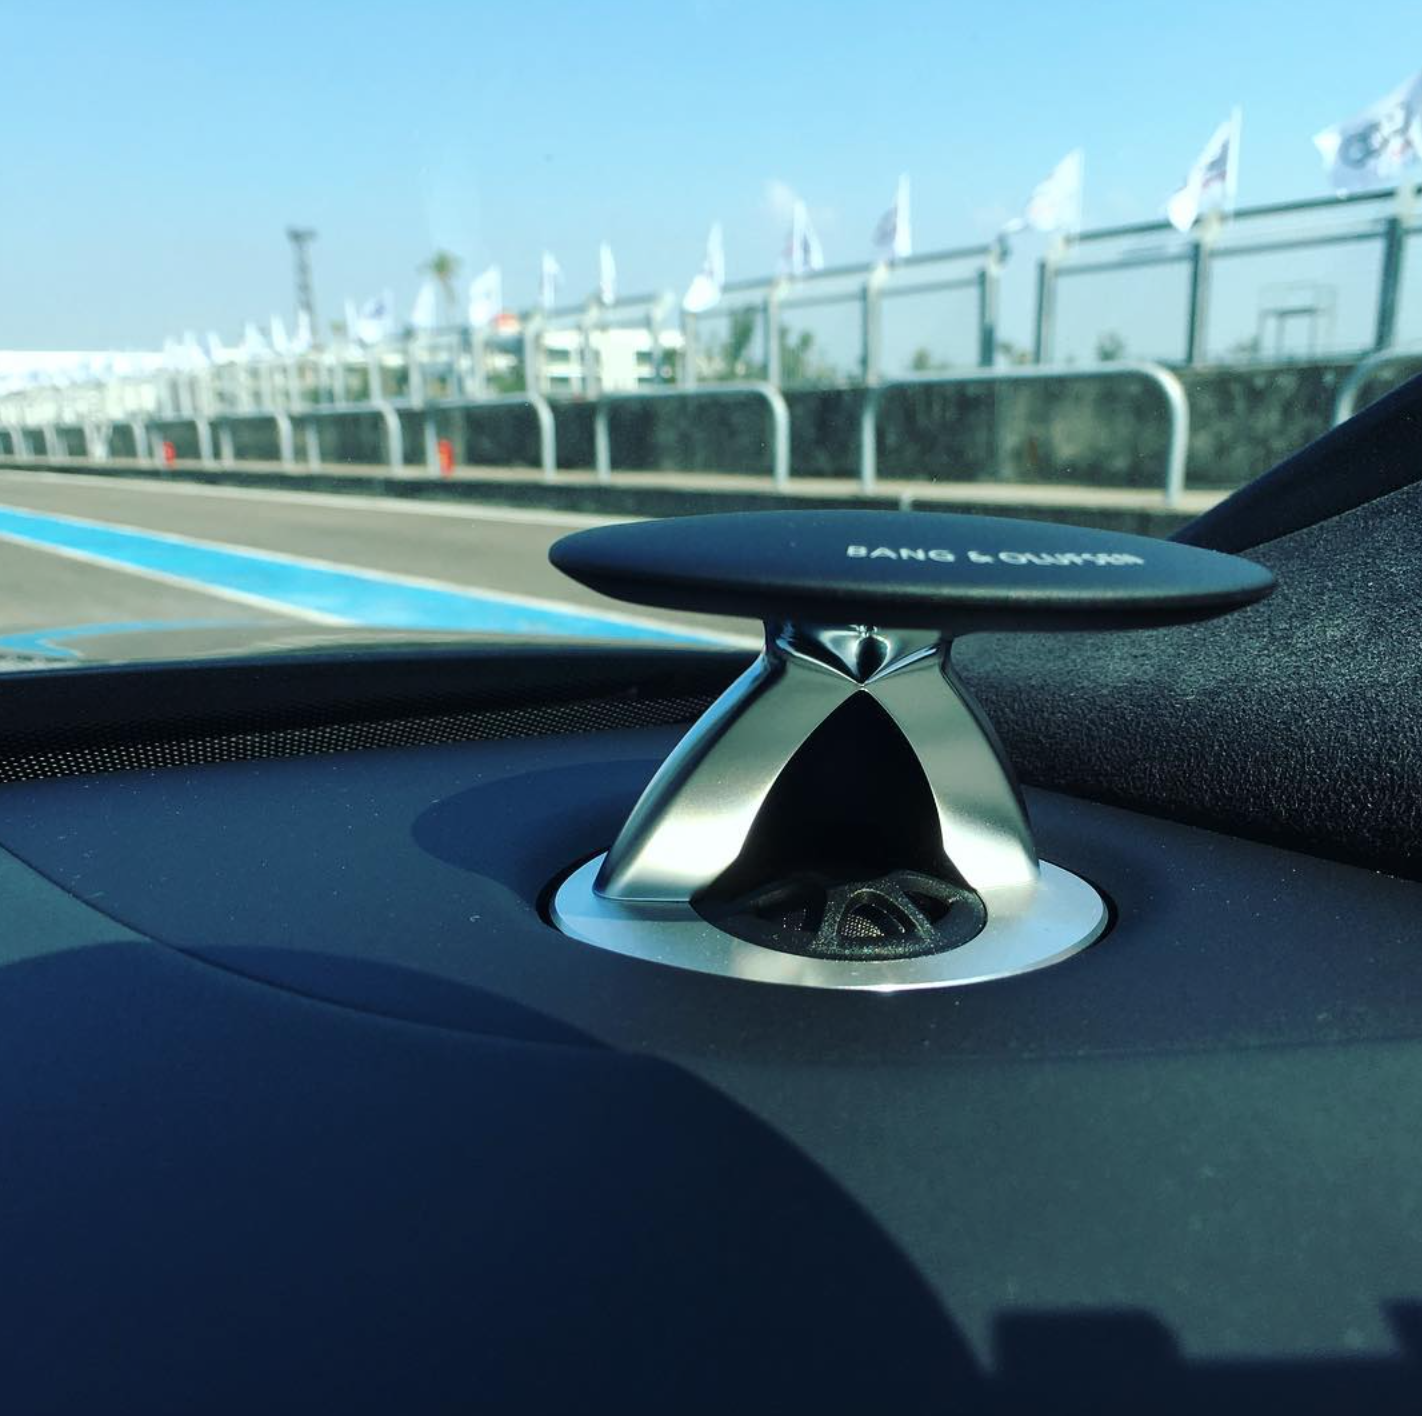 Audi driving experience with Bang u0026 Olufsen sound! Thank You samchou97 for sharing this cool & Audi driving experience with Bang u0026 Olufsen sound! Thank You ...